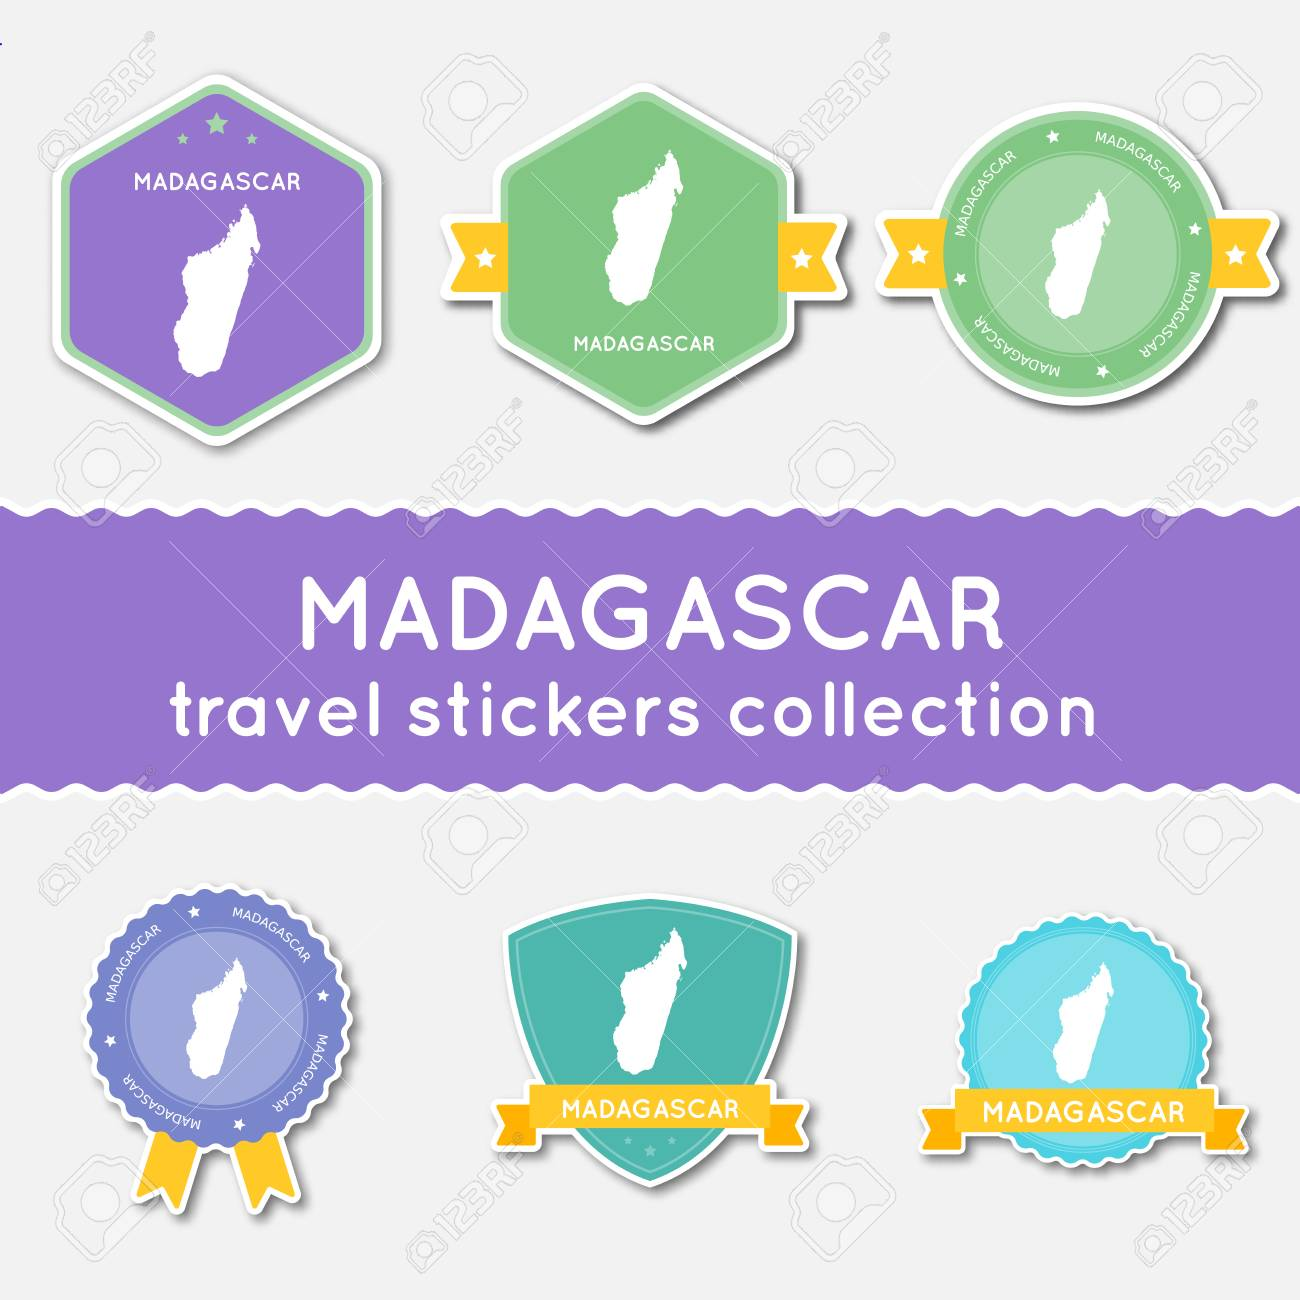 Madagascar Travel Stickers Collection Big Set Of Stickers With